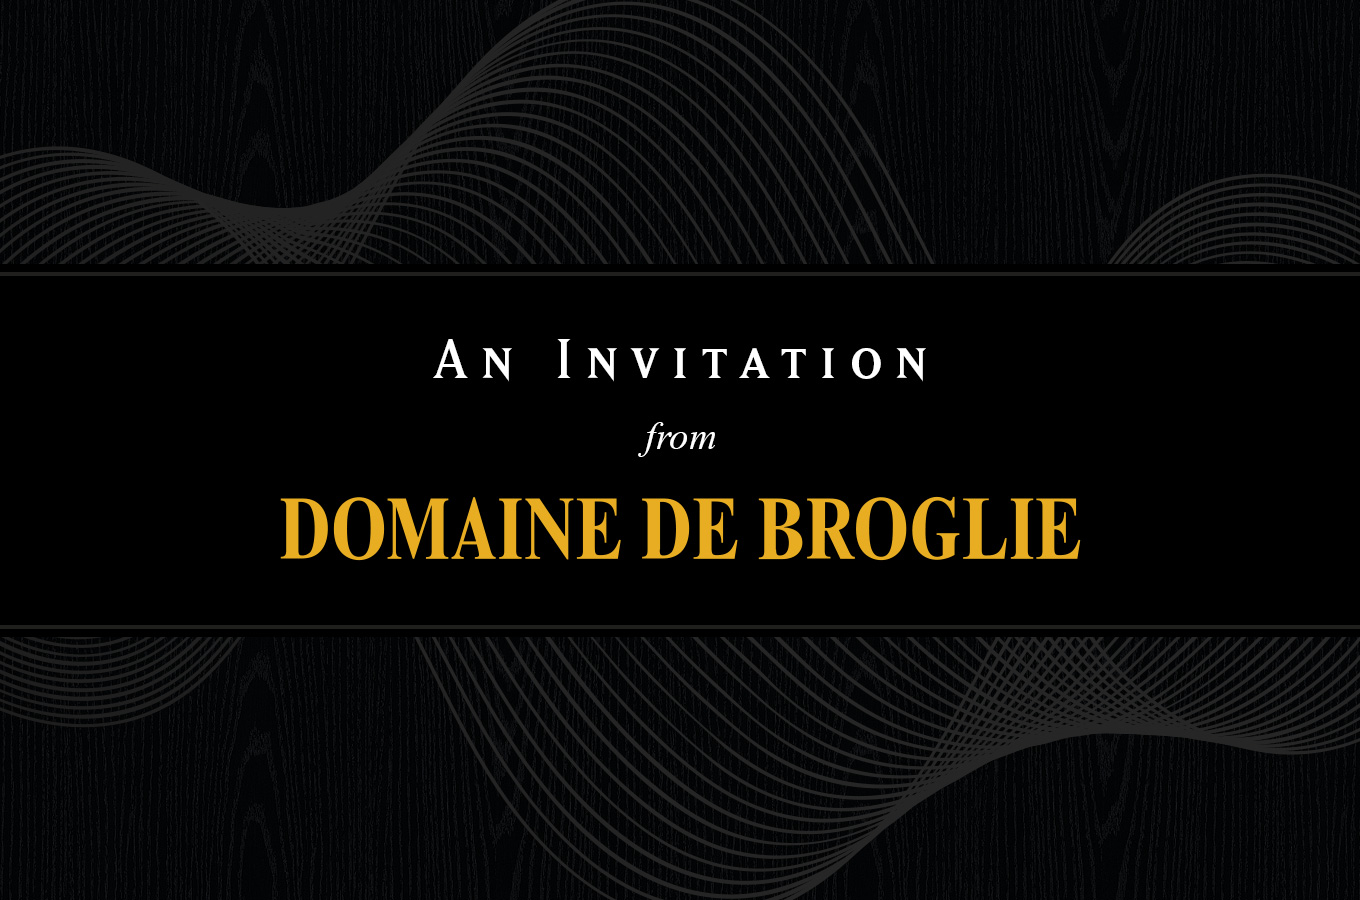 An Invitation from Domaine de Broglie